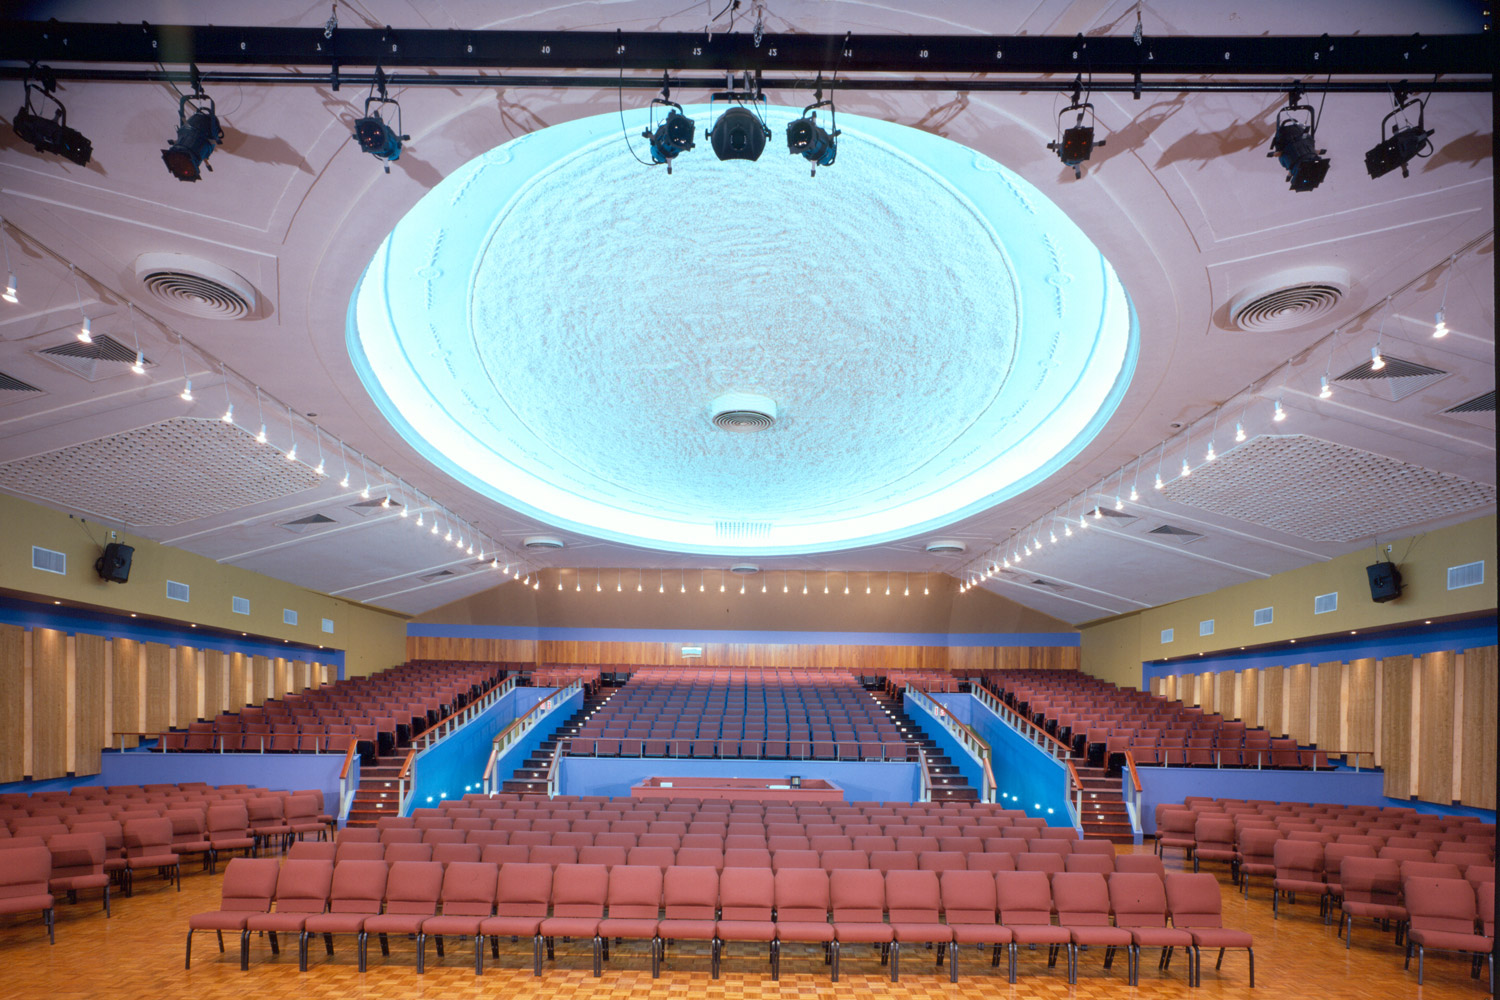 WSDG completed a major renovation project for Crossroads Tabernacle and Boden Center for The Performing Arts, a prominent inner-city church in The Bronx, NY. The facility includes an audio/video production studio, and a completely refurbished 800 seat theater. Theater Feat.